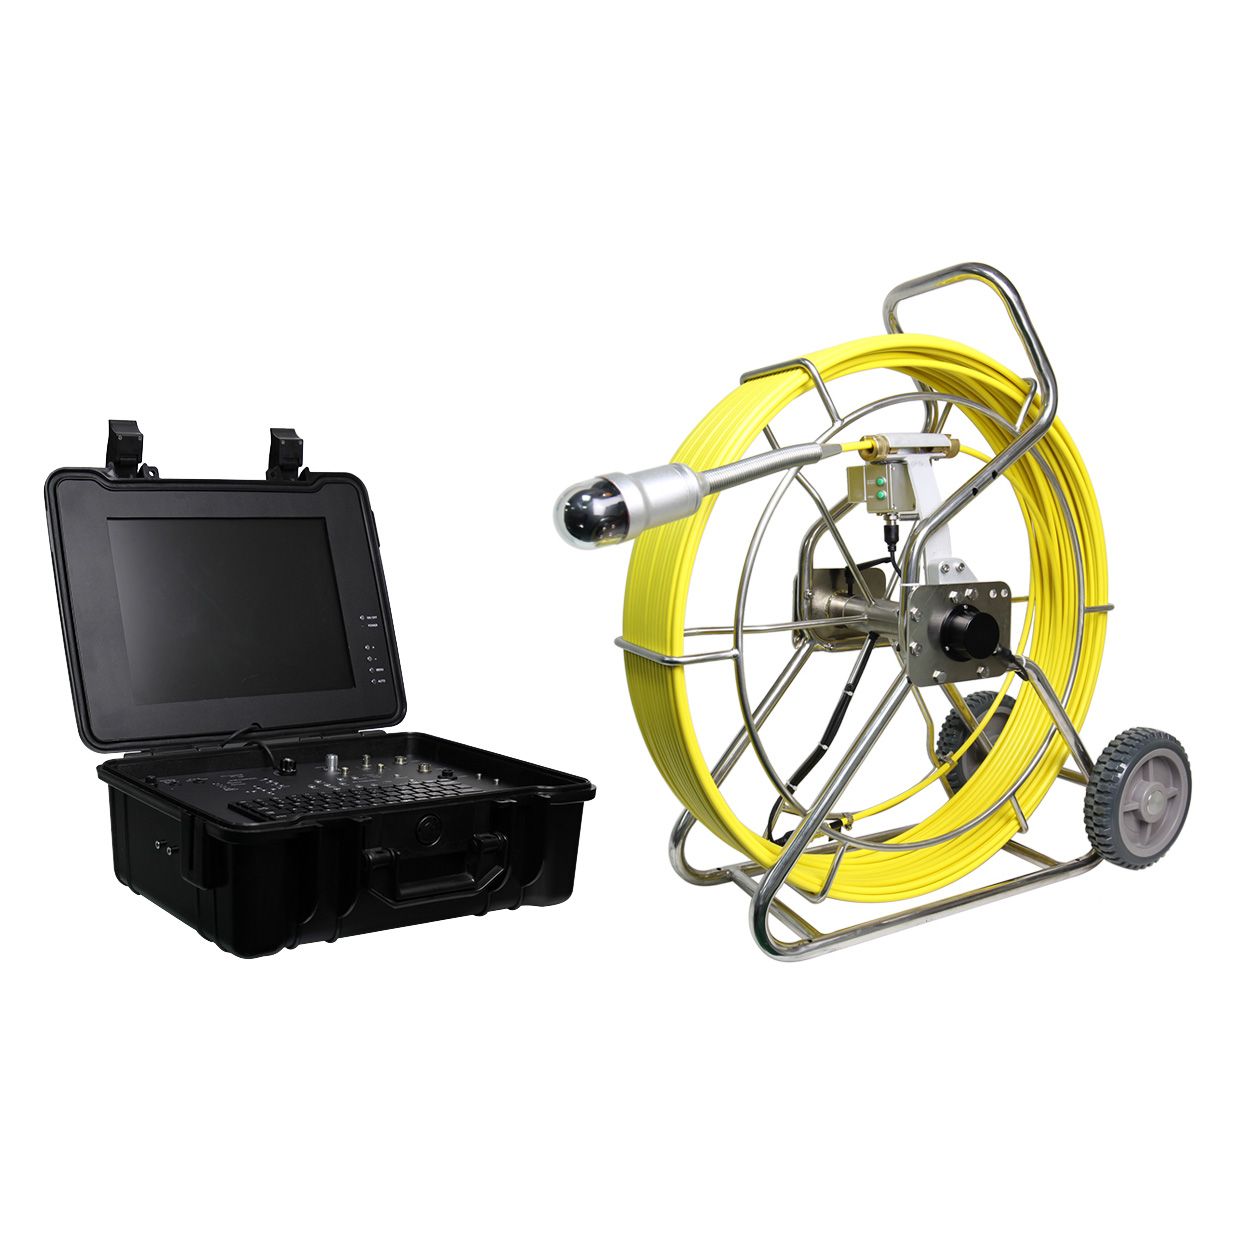 WOPSON 360 rotation pipe sewer inspection camera with wireless locator 512hz sonde